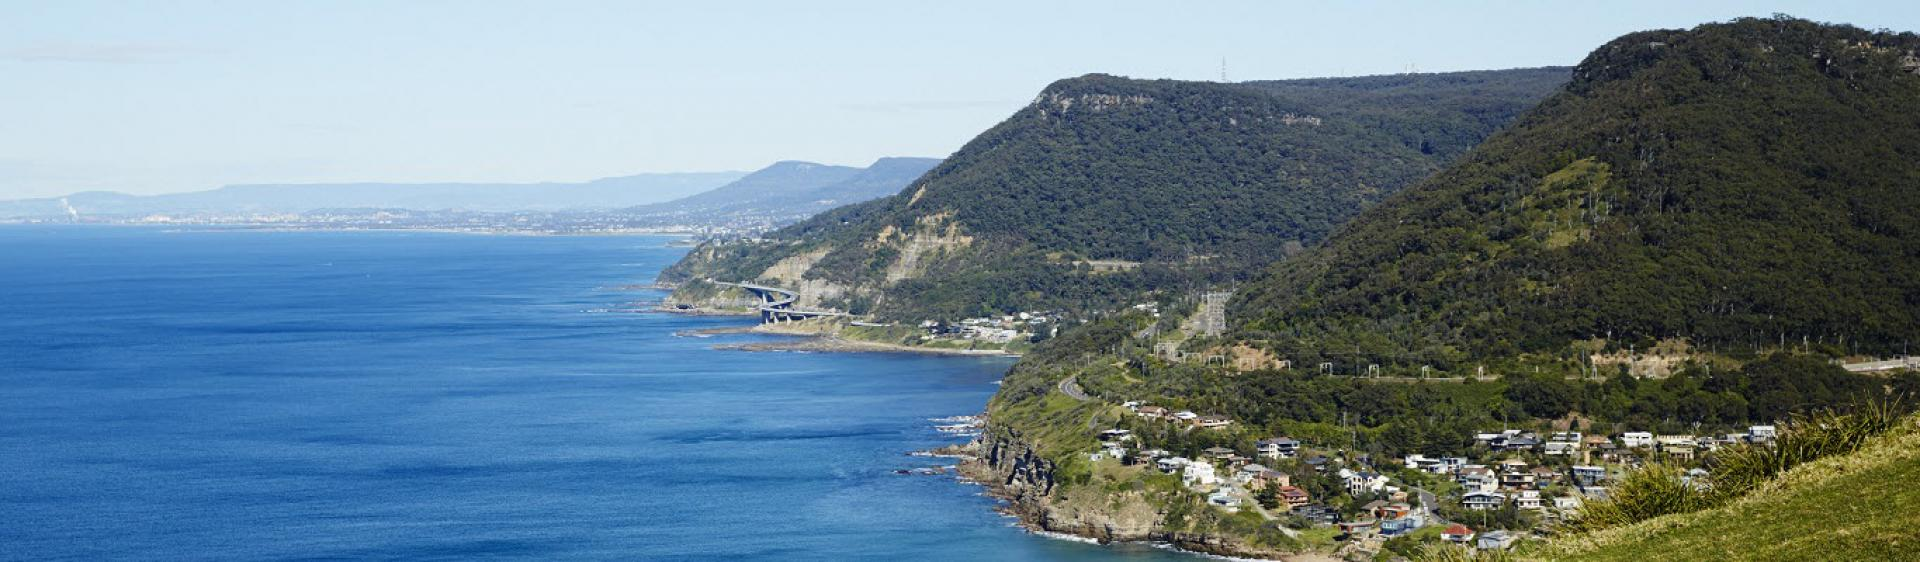 Stanwell Tops, Wollongong